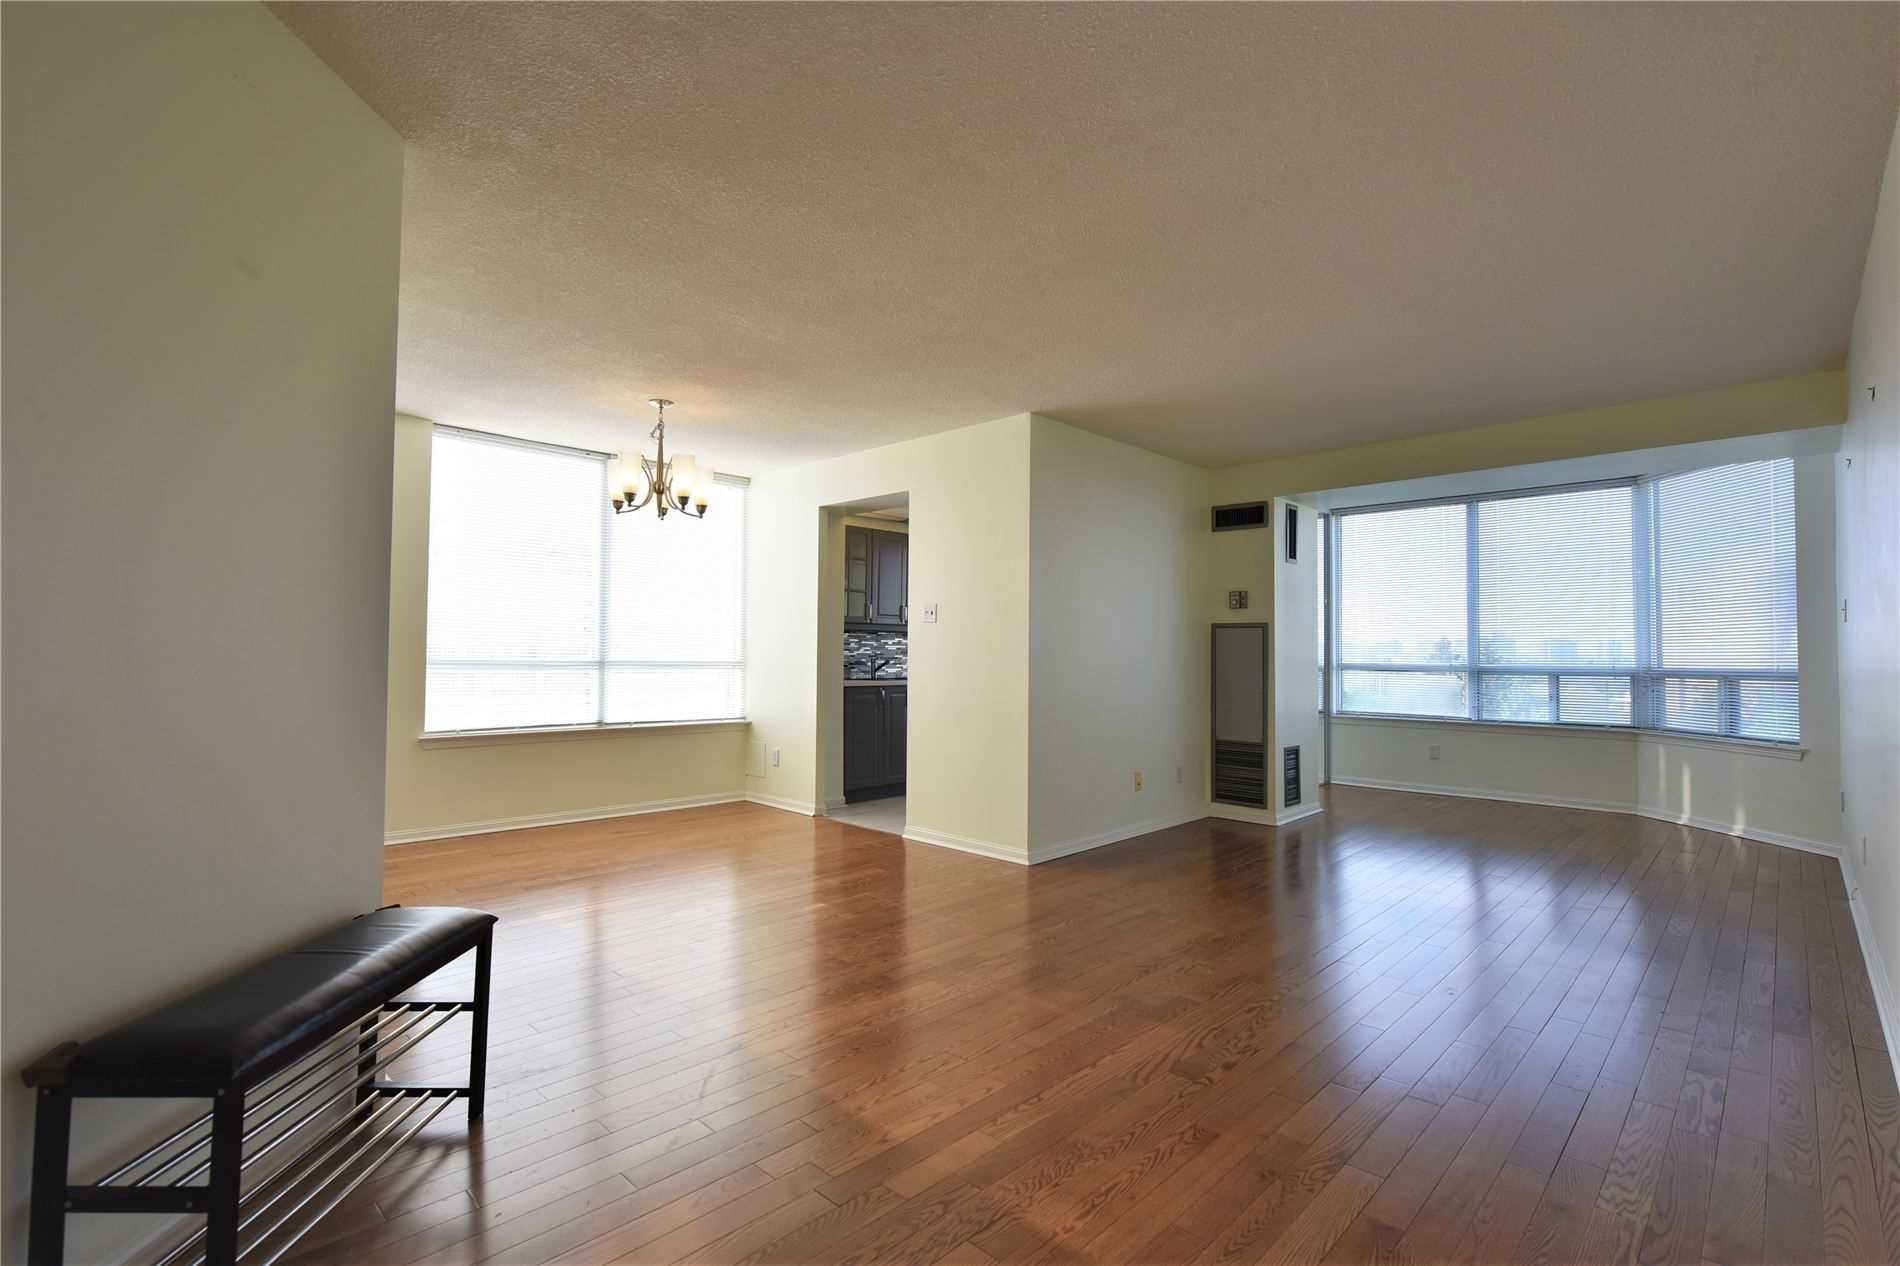 1121 Steeles Ave W, unit 809 for sale in Toronto - image #2